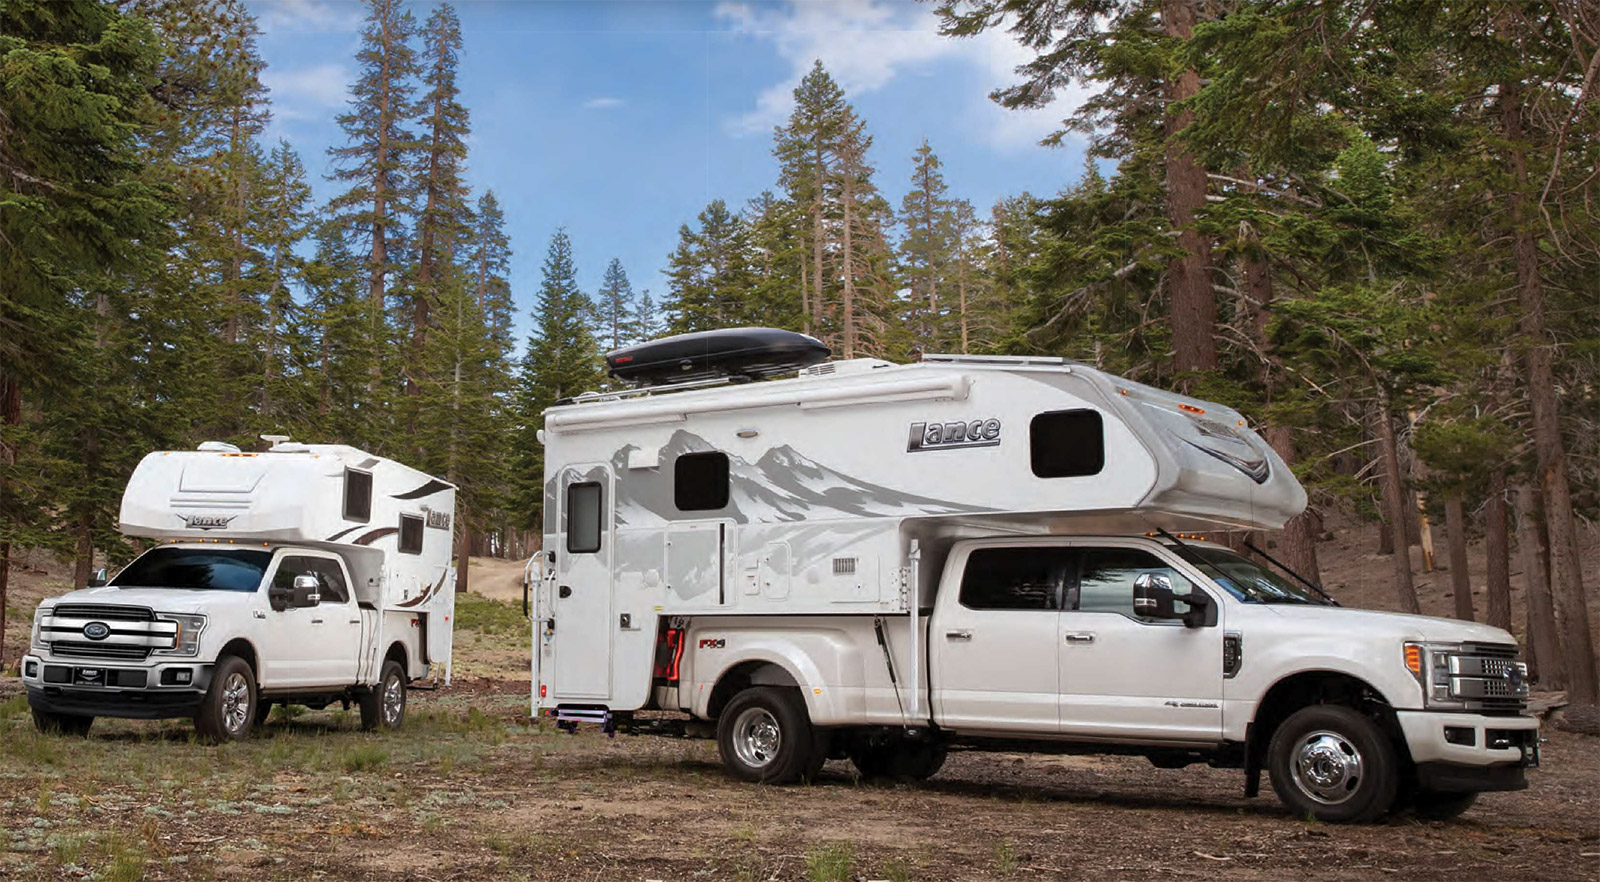 Lance RV & Truck Campers for Sale at Galaxy Campers | Lance